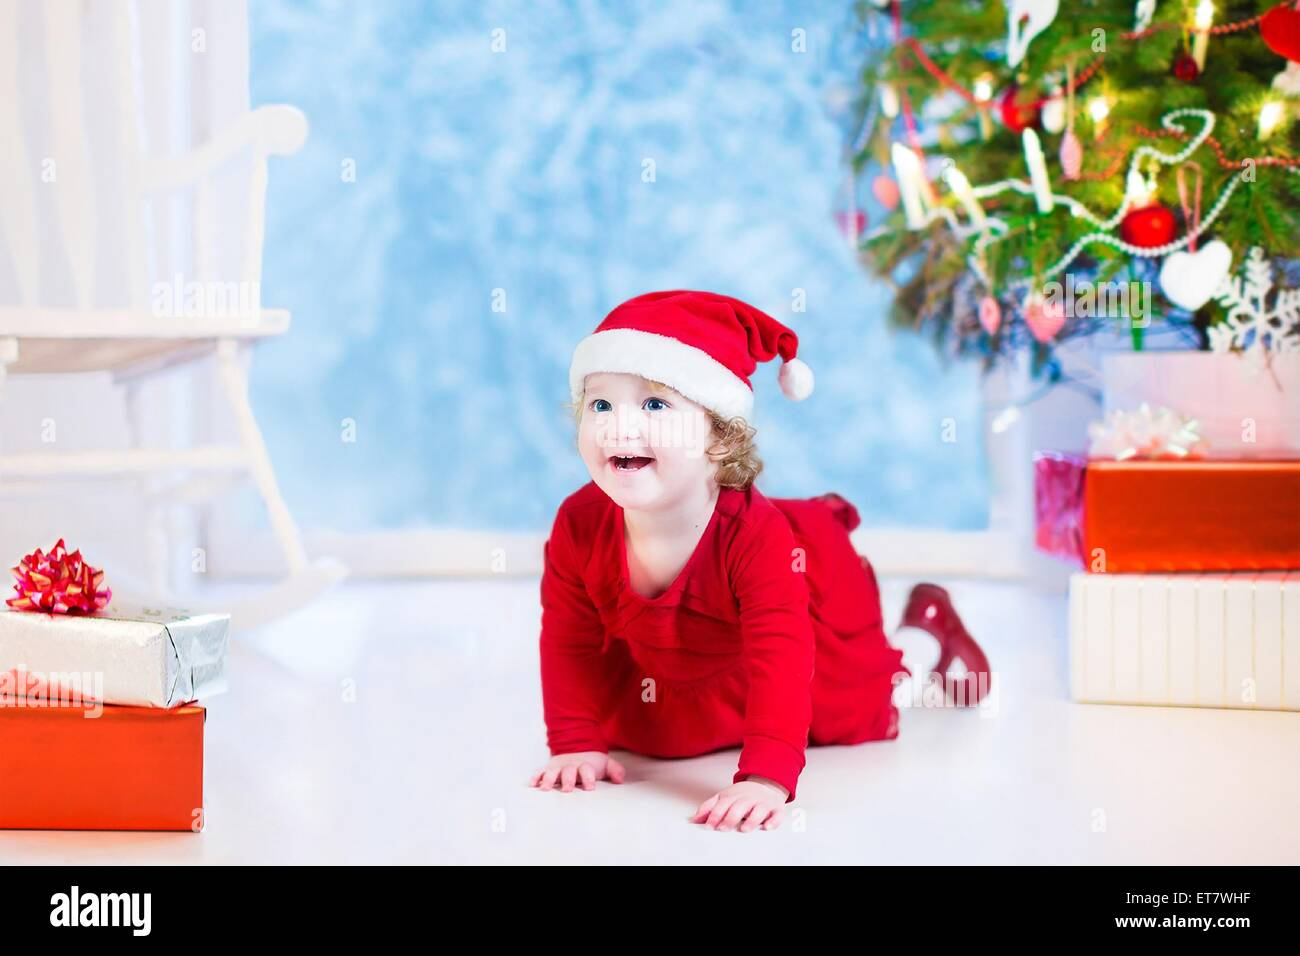 e478aebcfecf Cute curly little girl in a red dress and Santa hat playing under a  Christmas tree